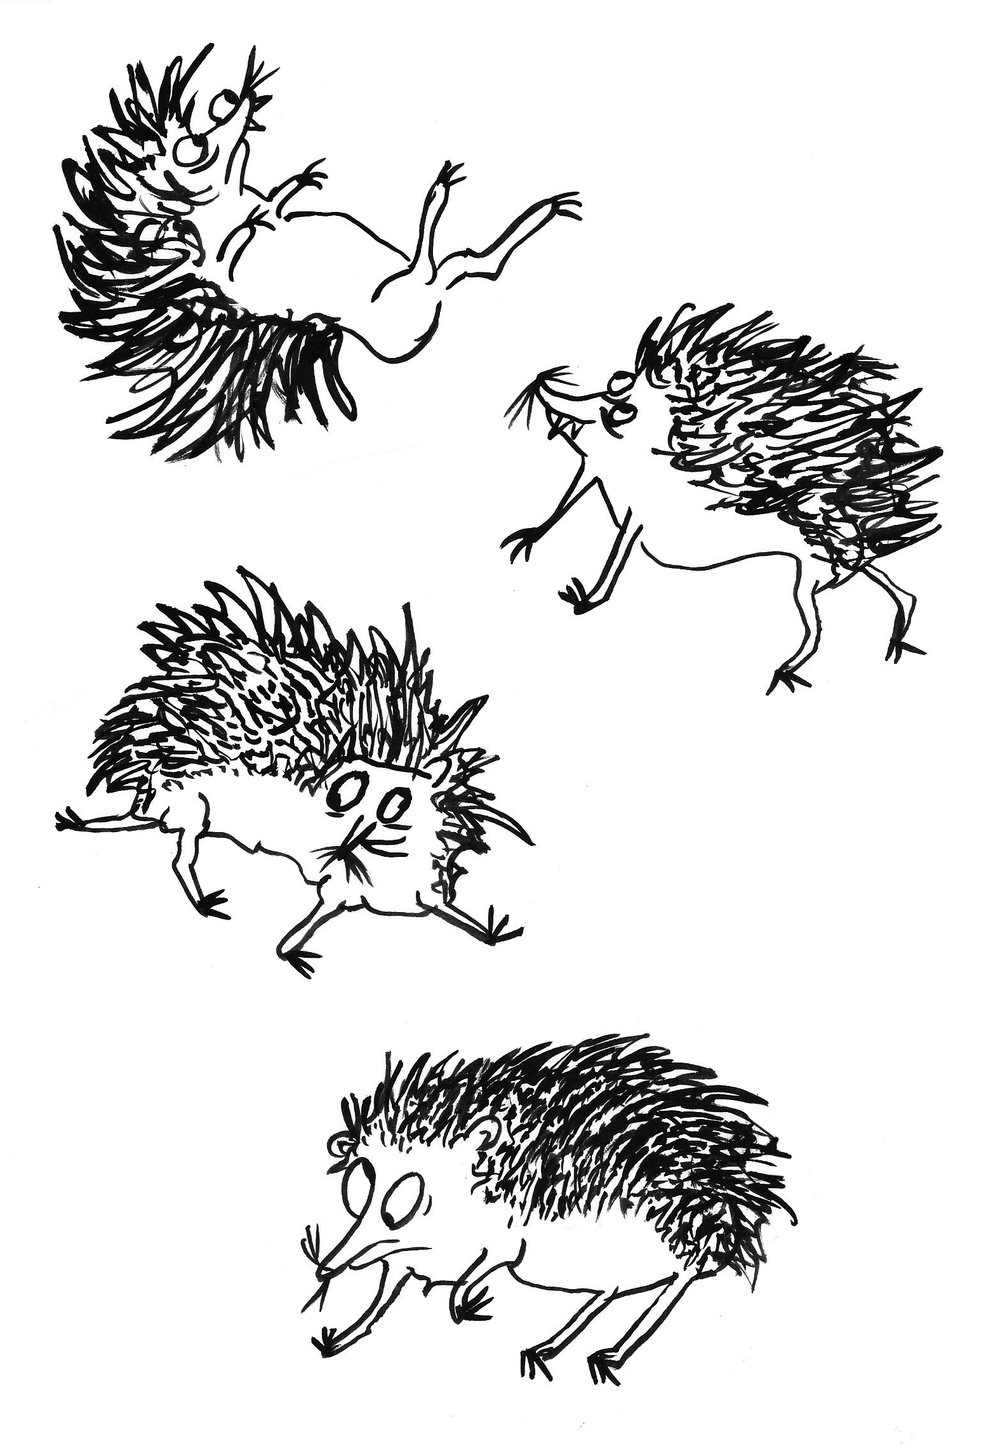 Hedgehog illo_clear background.jpg